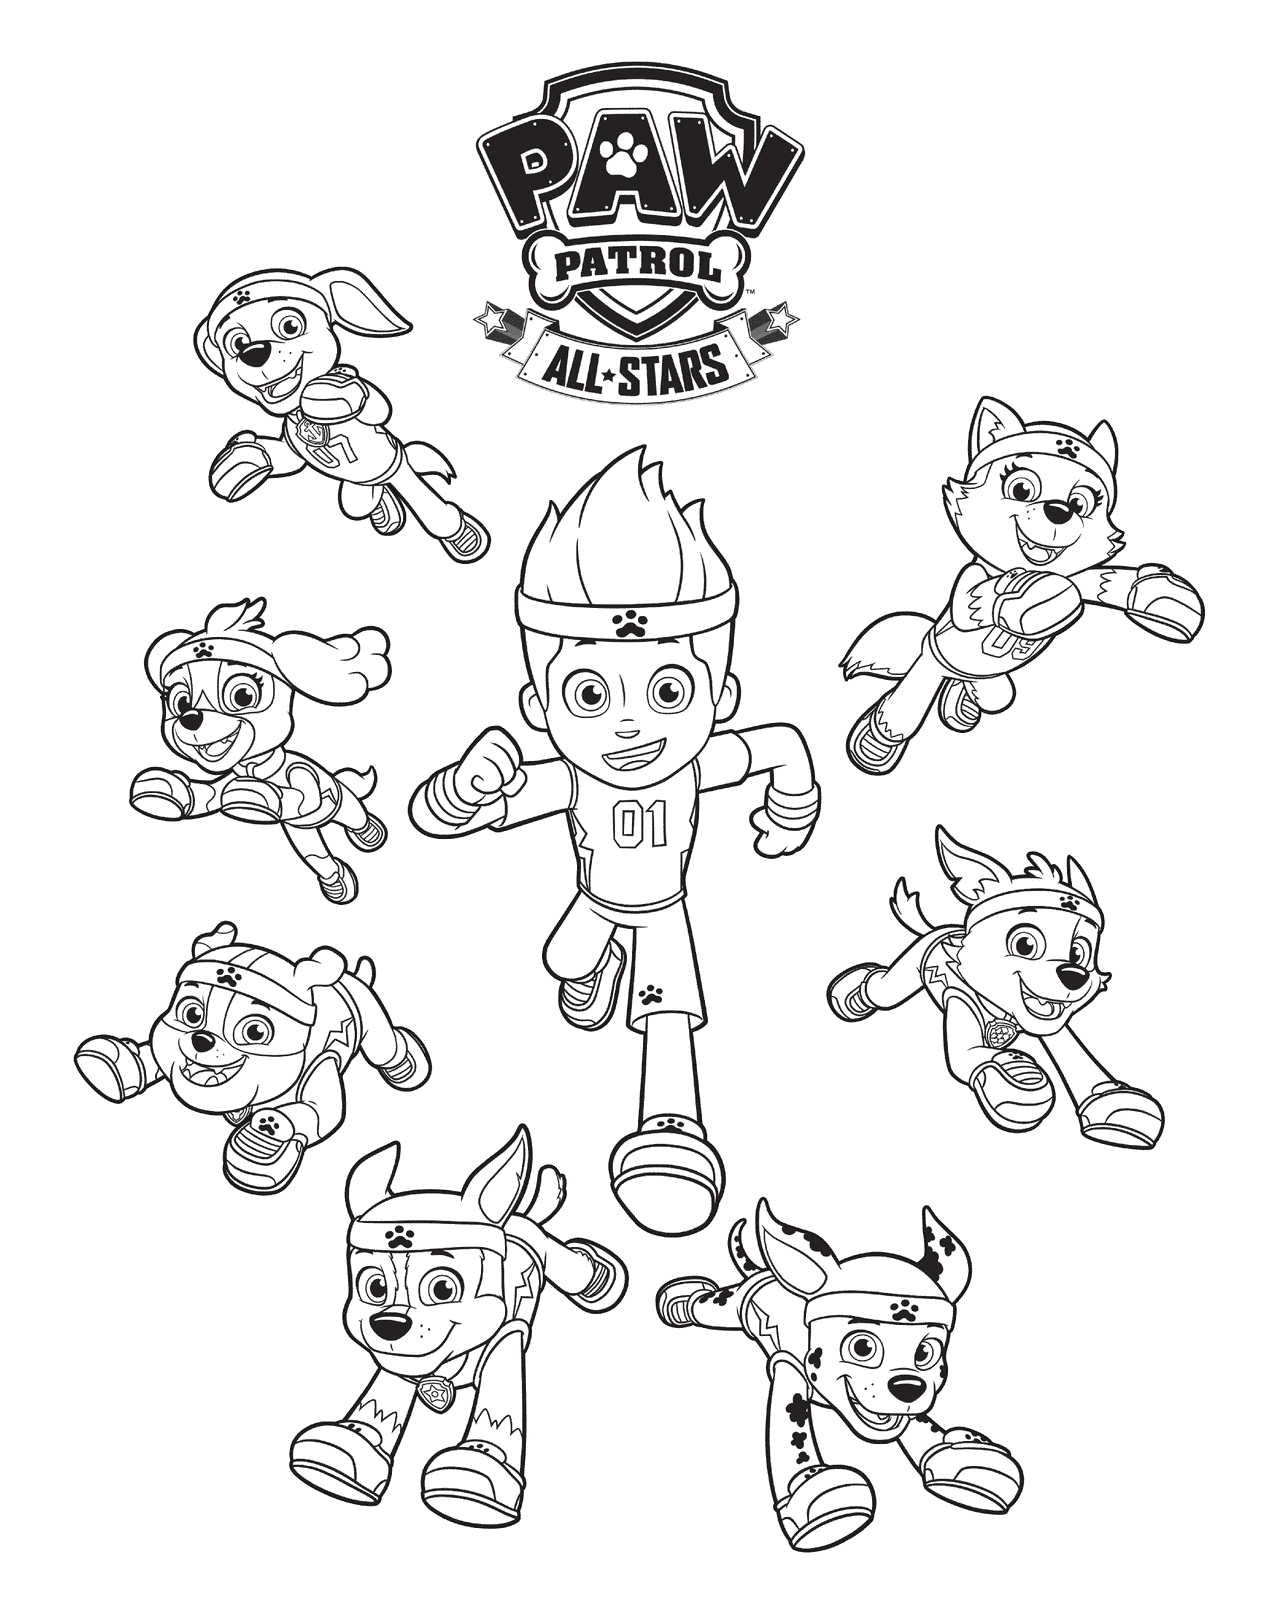 All-Stars Paw Patrol Coloring Page